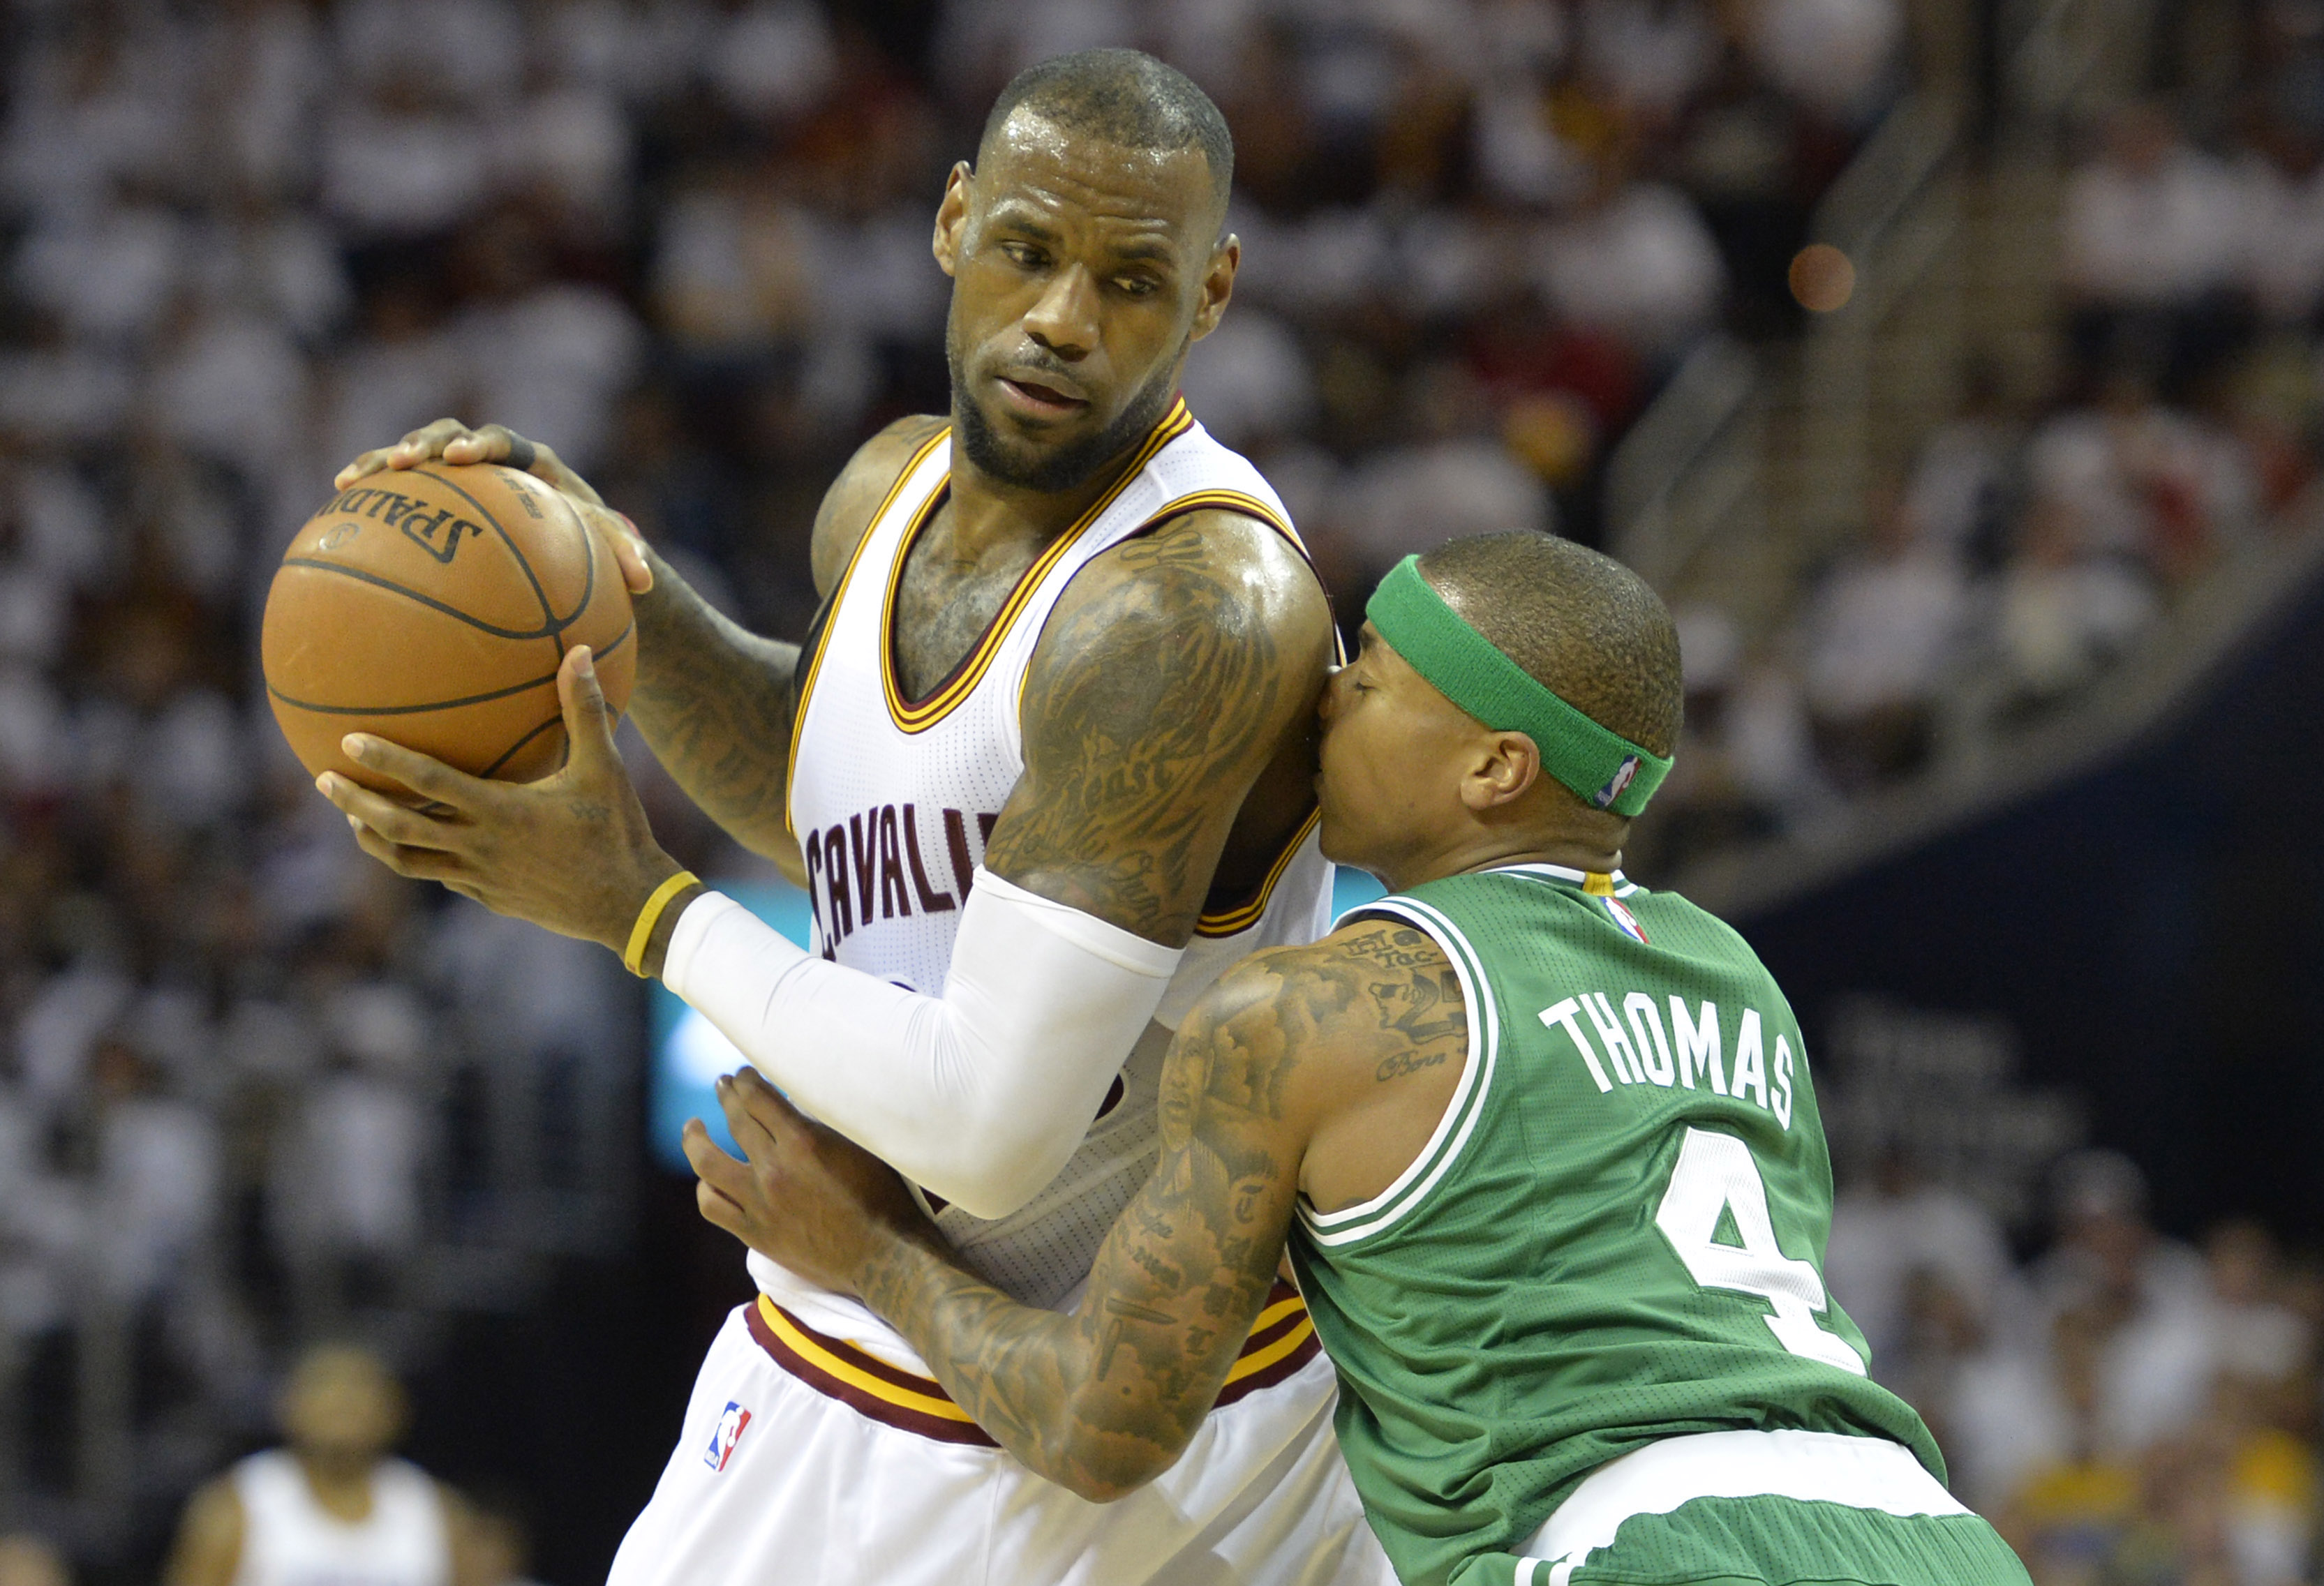 8532497-nba-playoffs-boston-celtics-at-cleveland-cavaliers